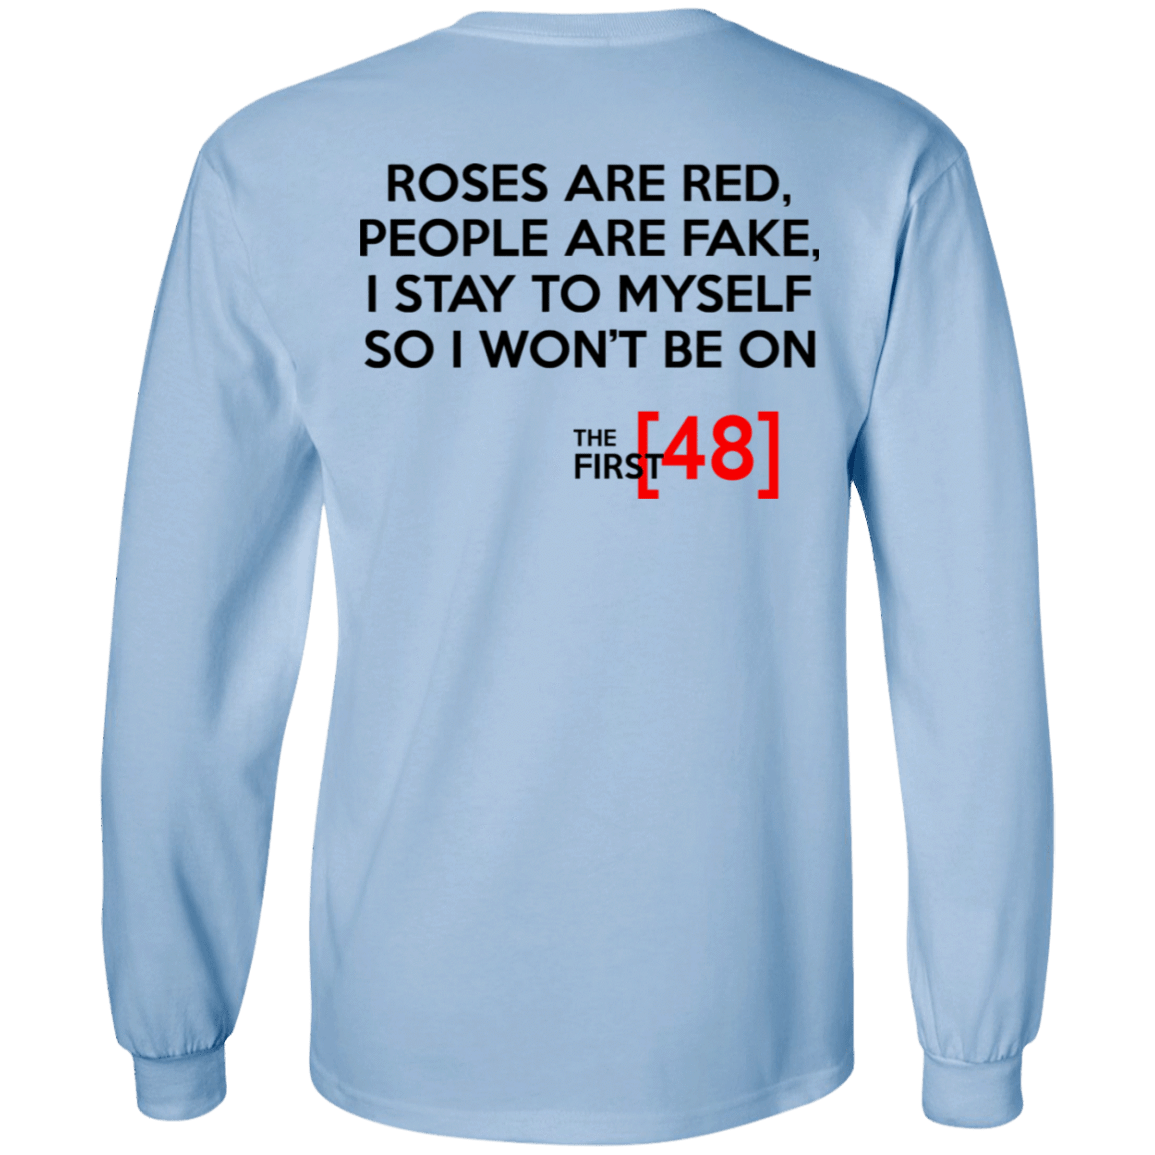 The First 48: Roses Are Red People Are Fake I Stay To Myself So I Won't Be On T-Shirts, Hoodies, Tank 30-2110-79687348-10748 - Tee Ript